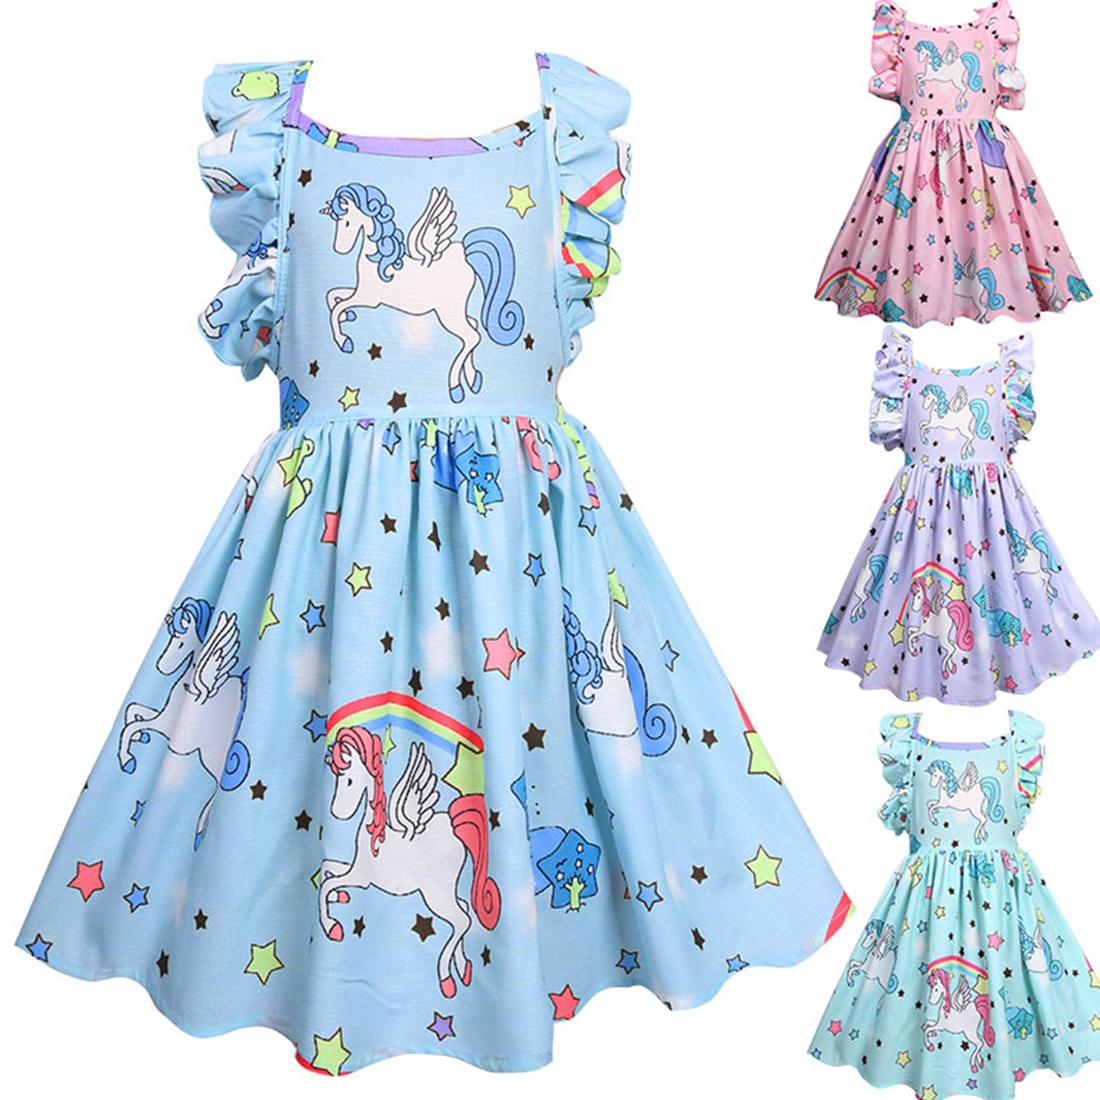 5125 Unicorn Ruffles Princess Party Brithday Baby Girl Dress Summer A line Kids Dresses For Girls